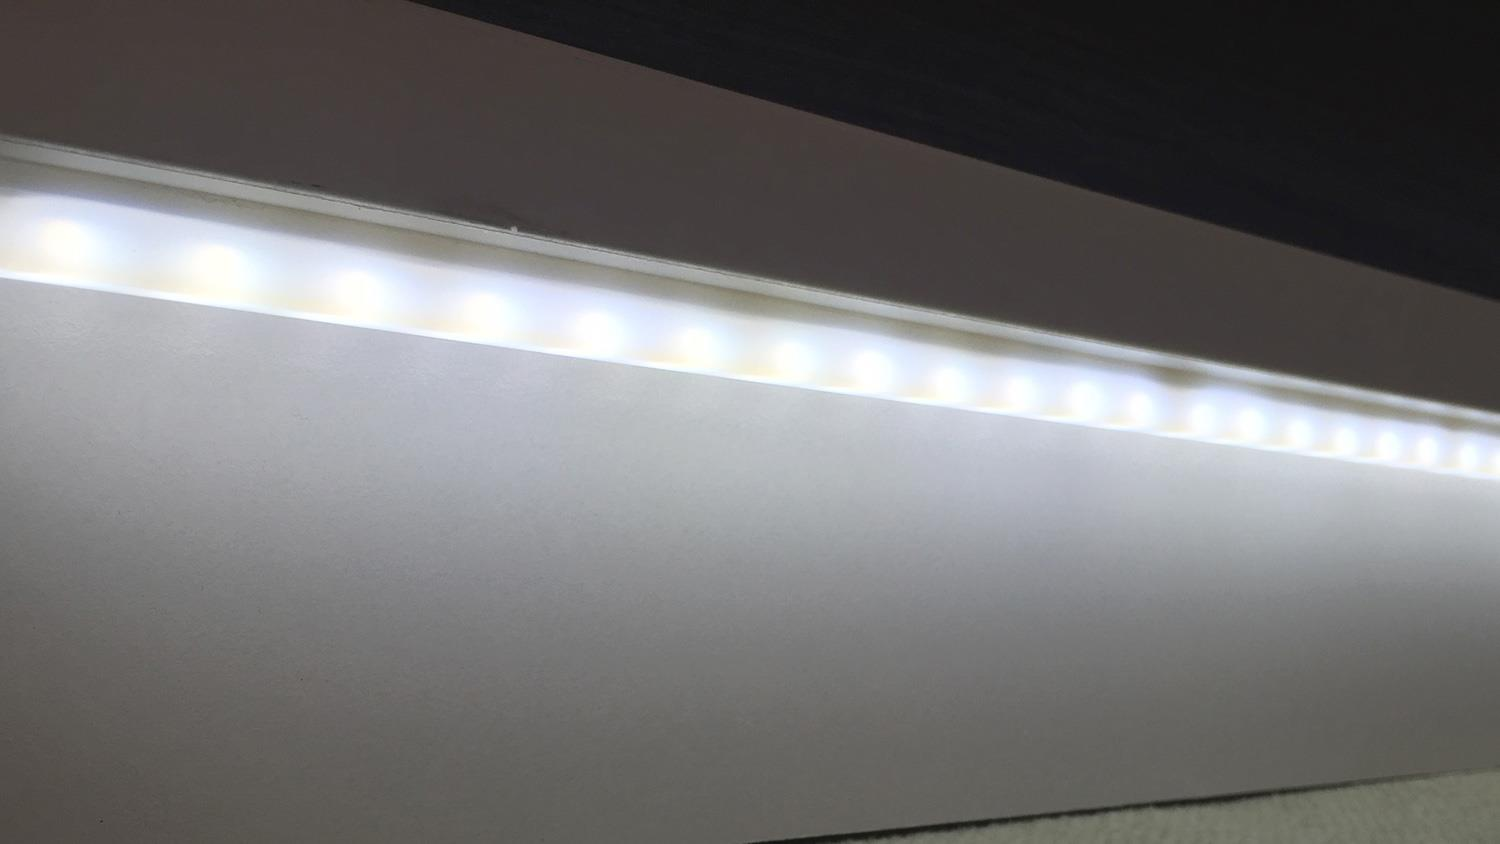 Led Glasregalbeleuchtung Regal Mit Beleuchtung Genial 1 4 Buee Led Regal Mit Beleuchtung Ikea